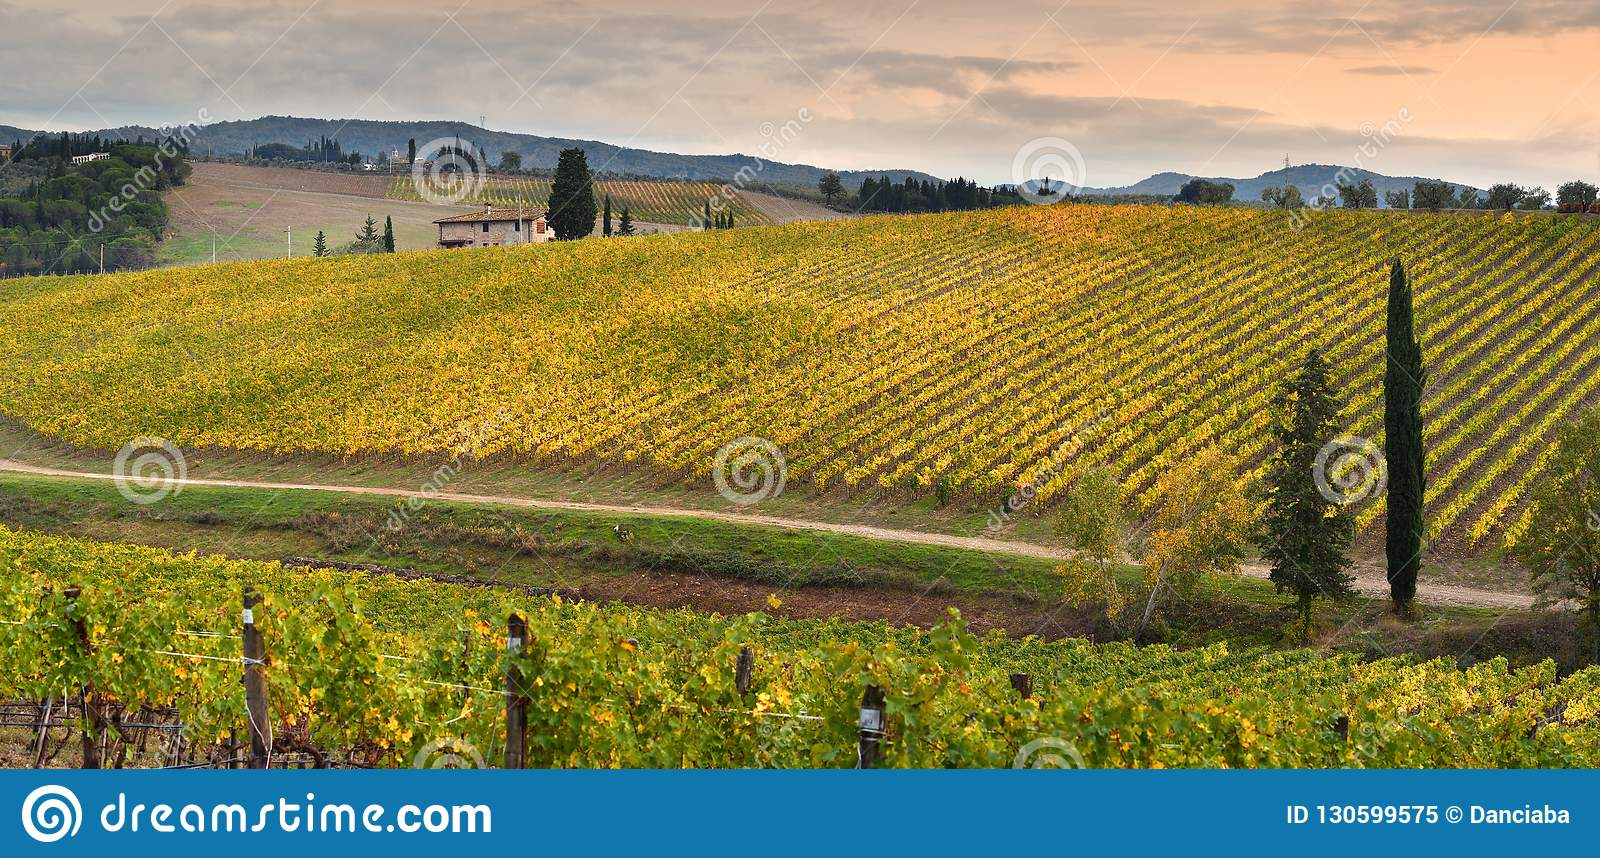 Rows of yellow vineyards at sunset in Chianti region near Florence during the colored autumn season. Tuscany.